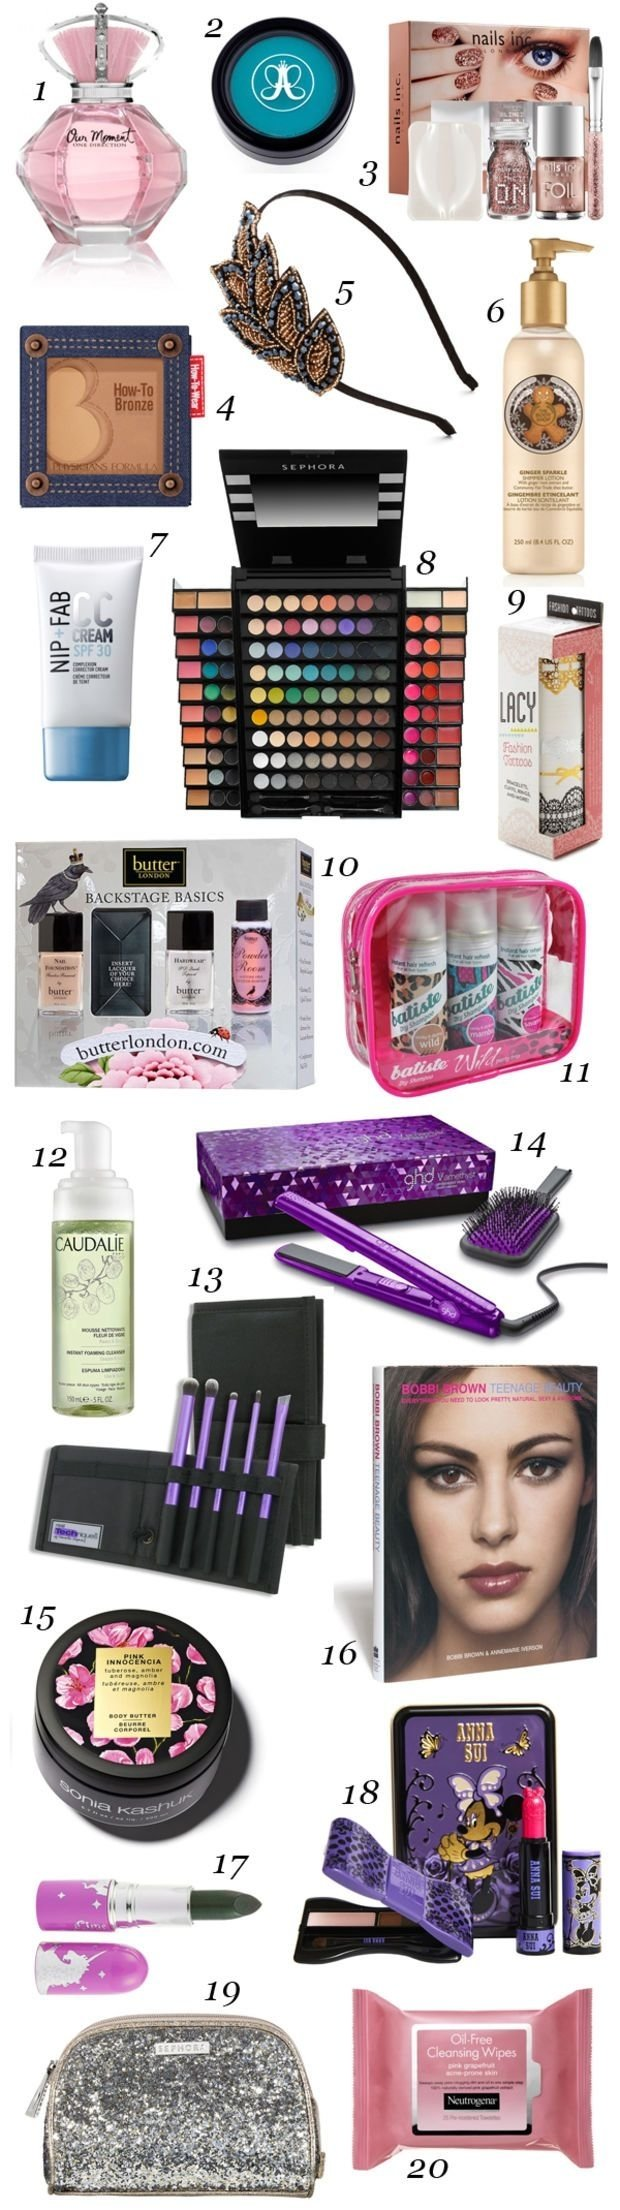 gifts for 20 year old girls dealssite co - Christmas Gifts For 18 Year Old Girl